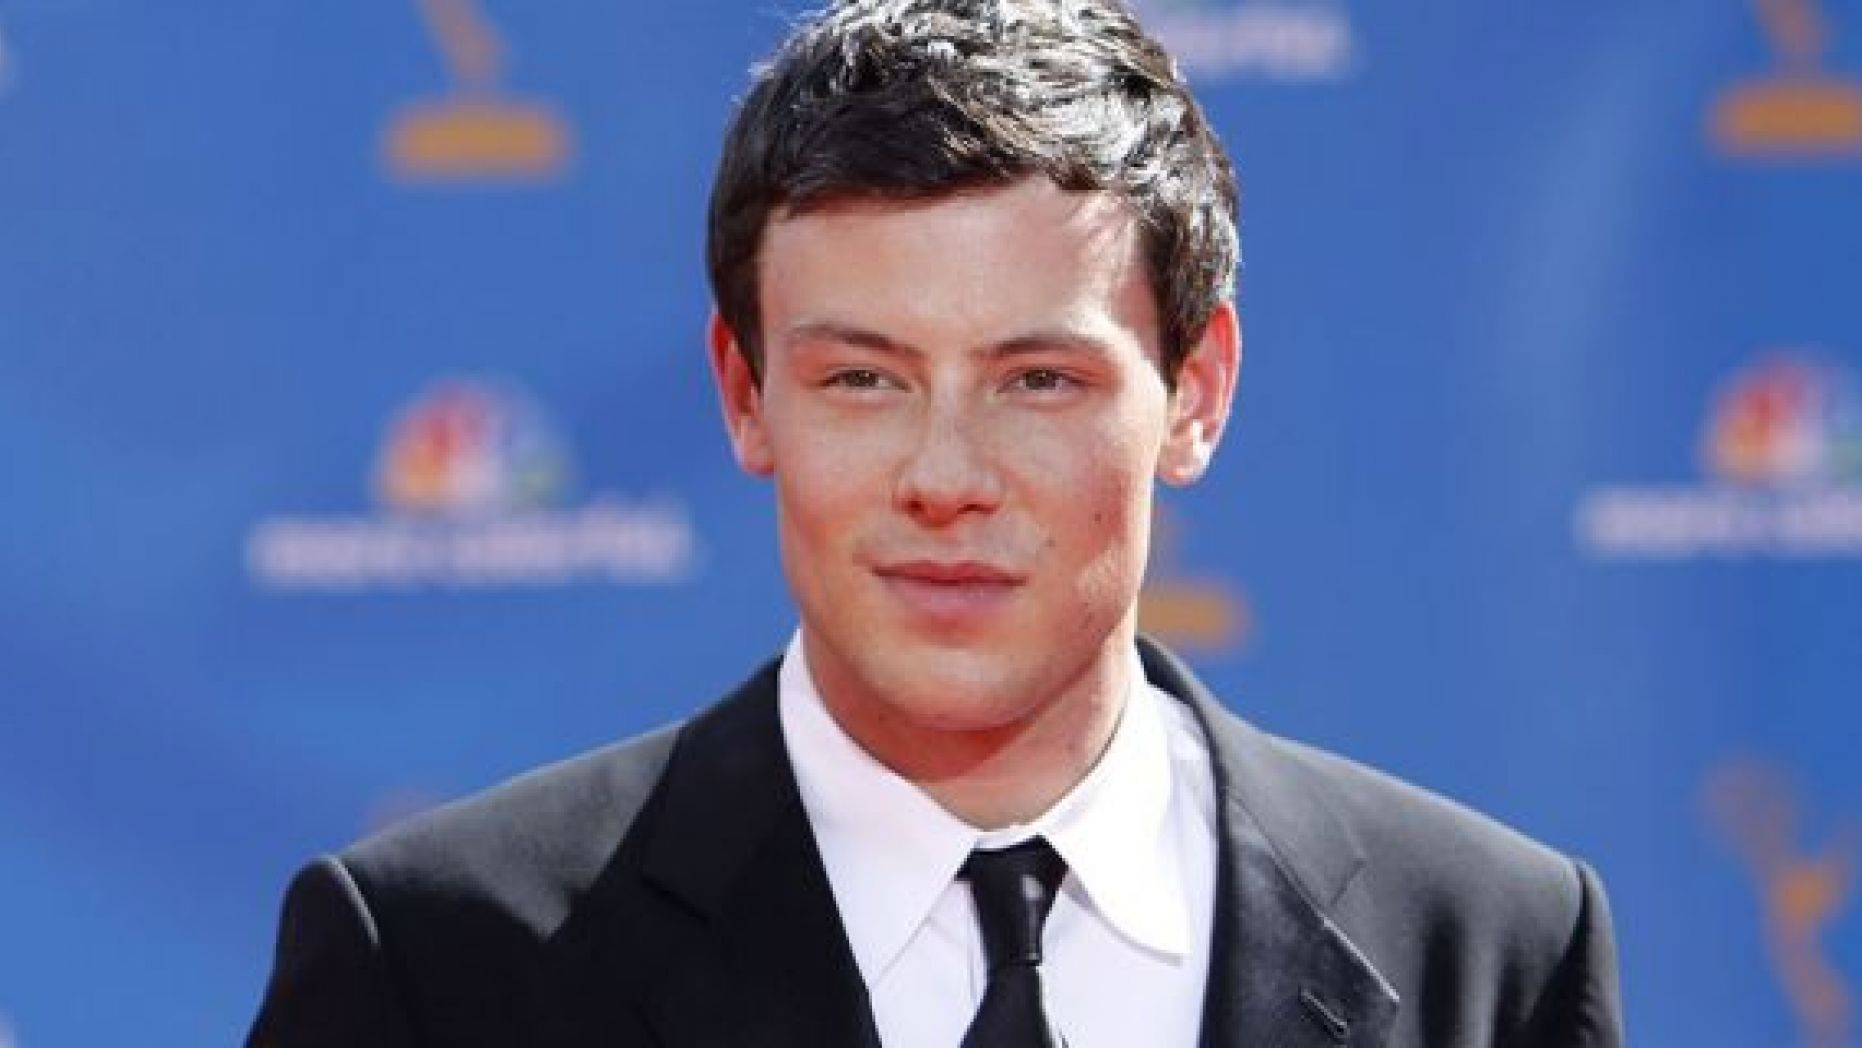 Cory Monteith who played Finn died of apparent drug overdose in the 5th season of Glee